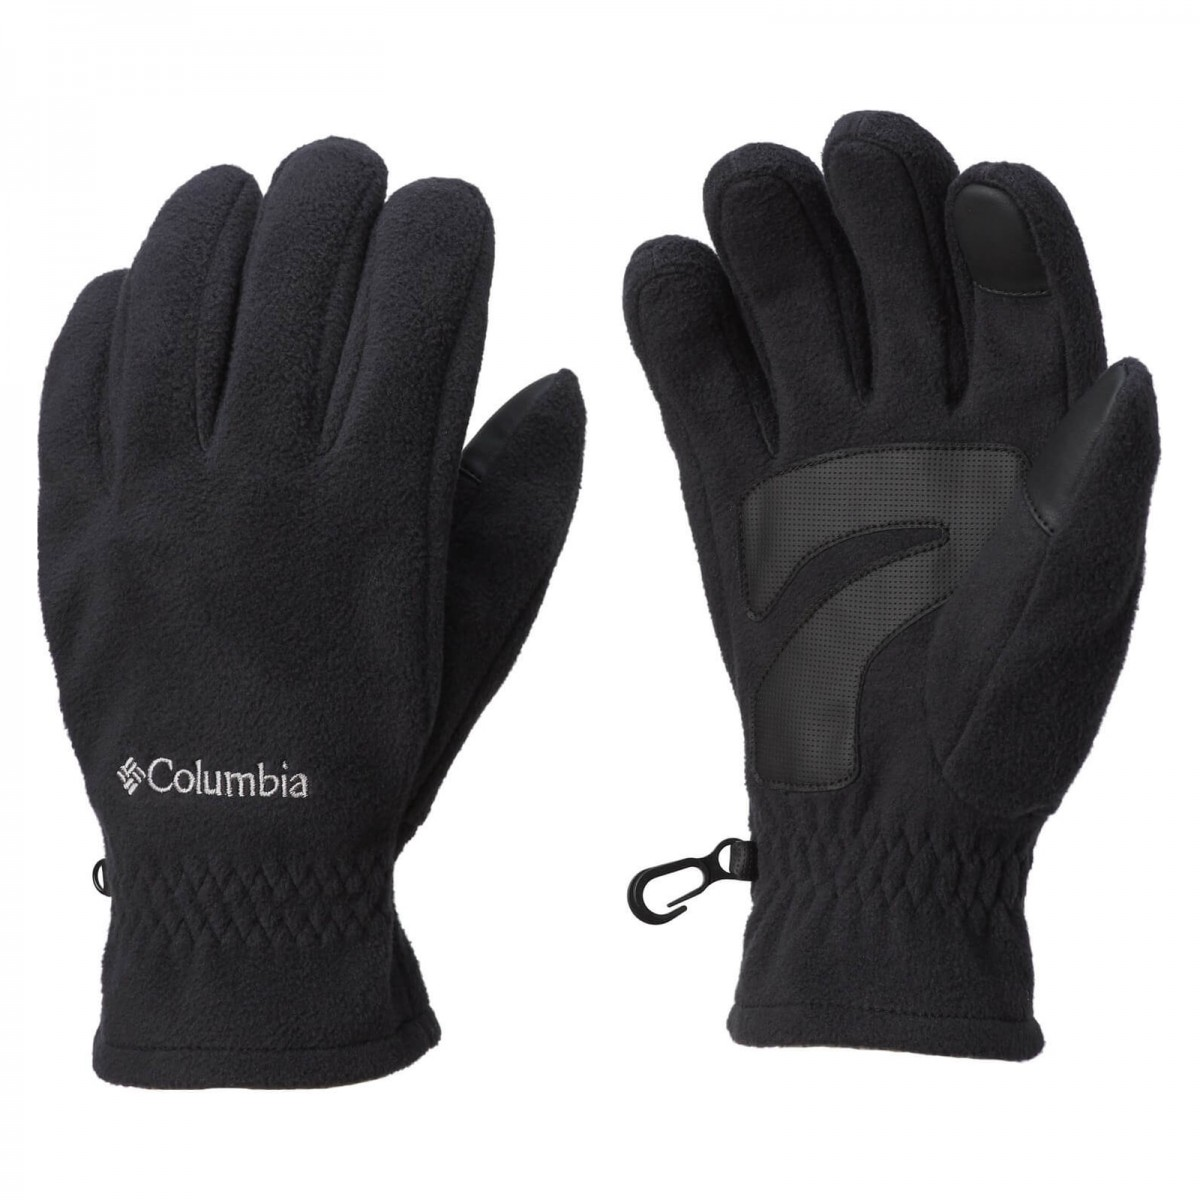 Mai multe Bărbați Outdoor Columbia M Thermarator Glove Negre -1